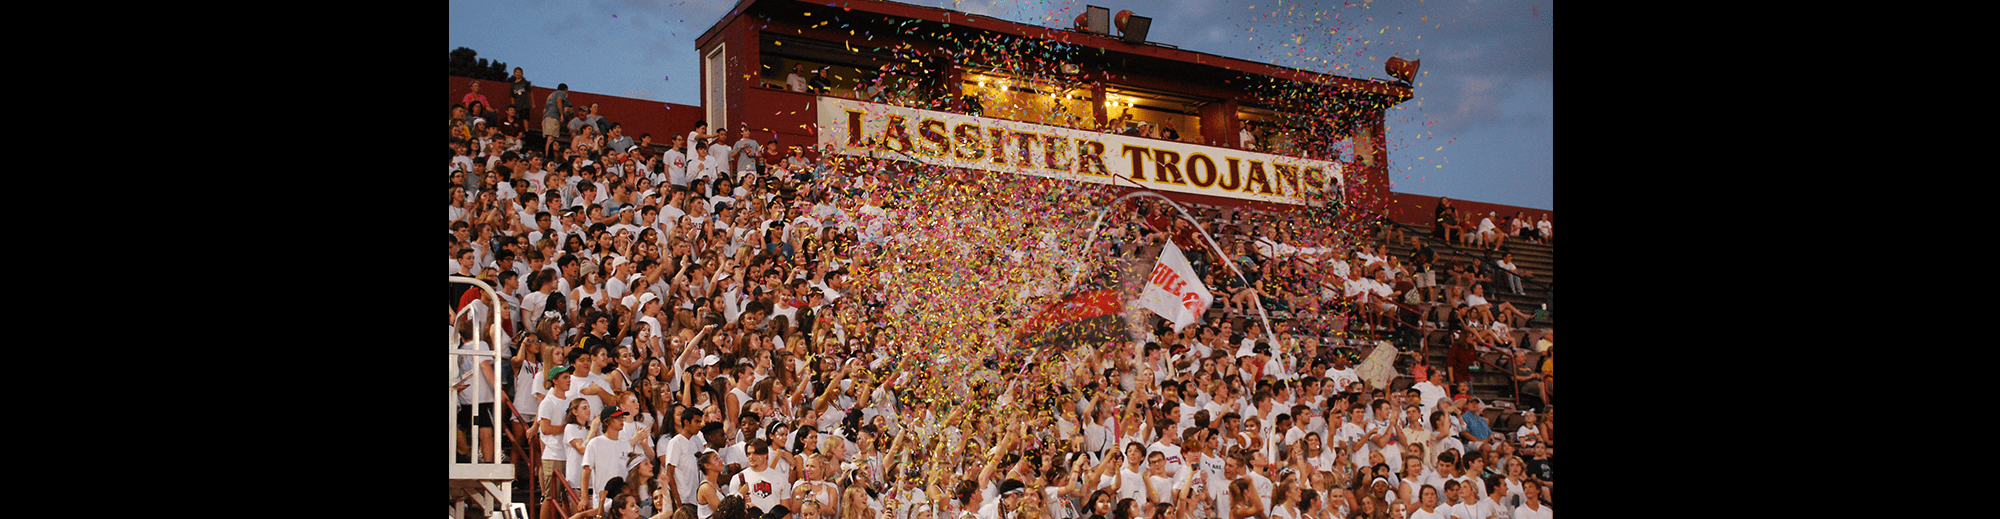 Students participate in an outdoor pep rally with confetti as they sit on bleachers in front of a Lassiter Trojans sign